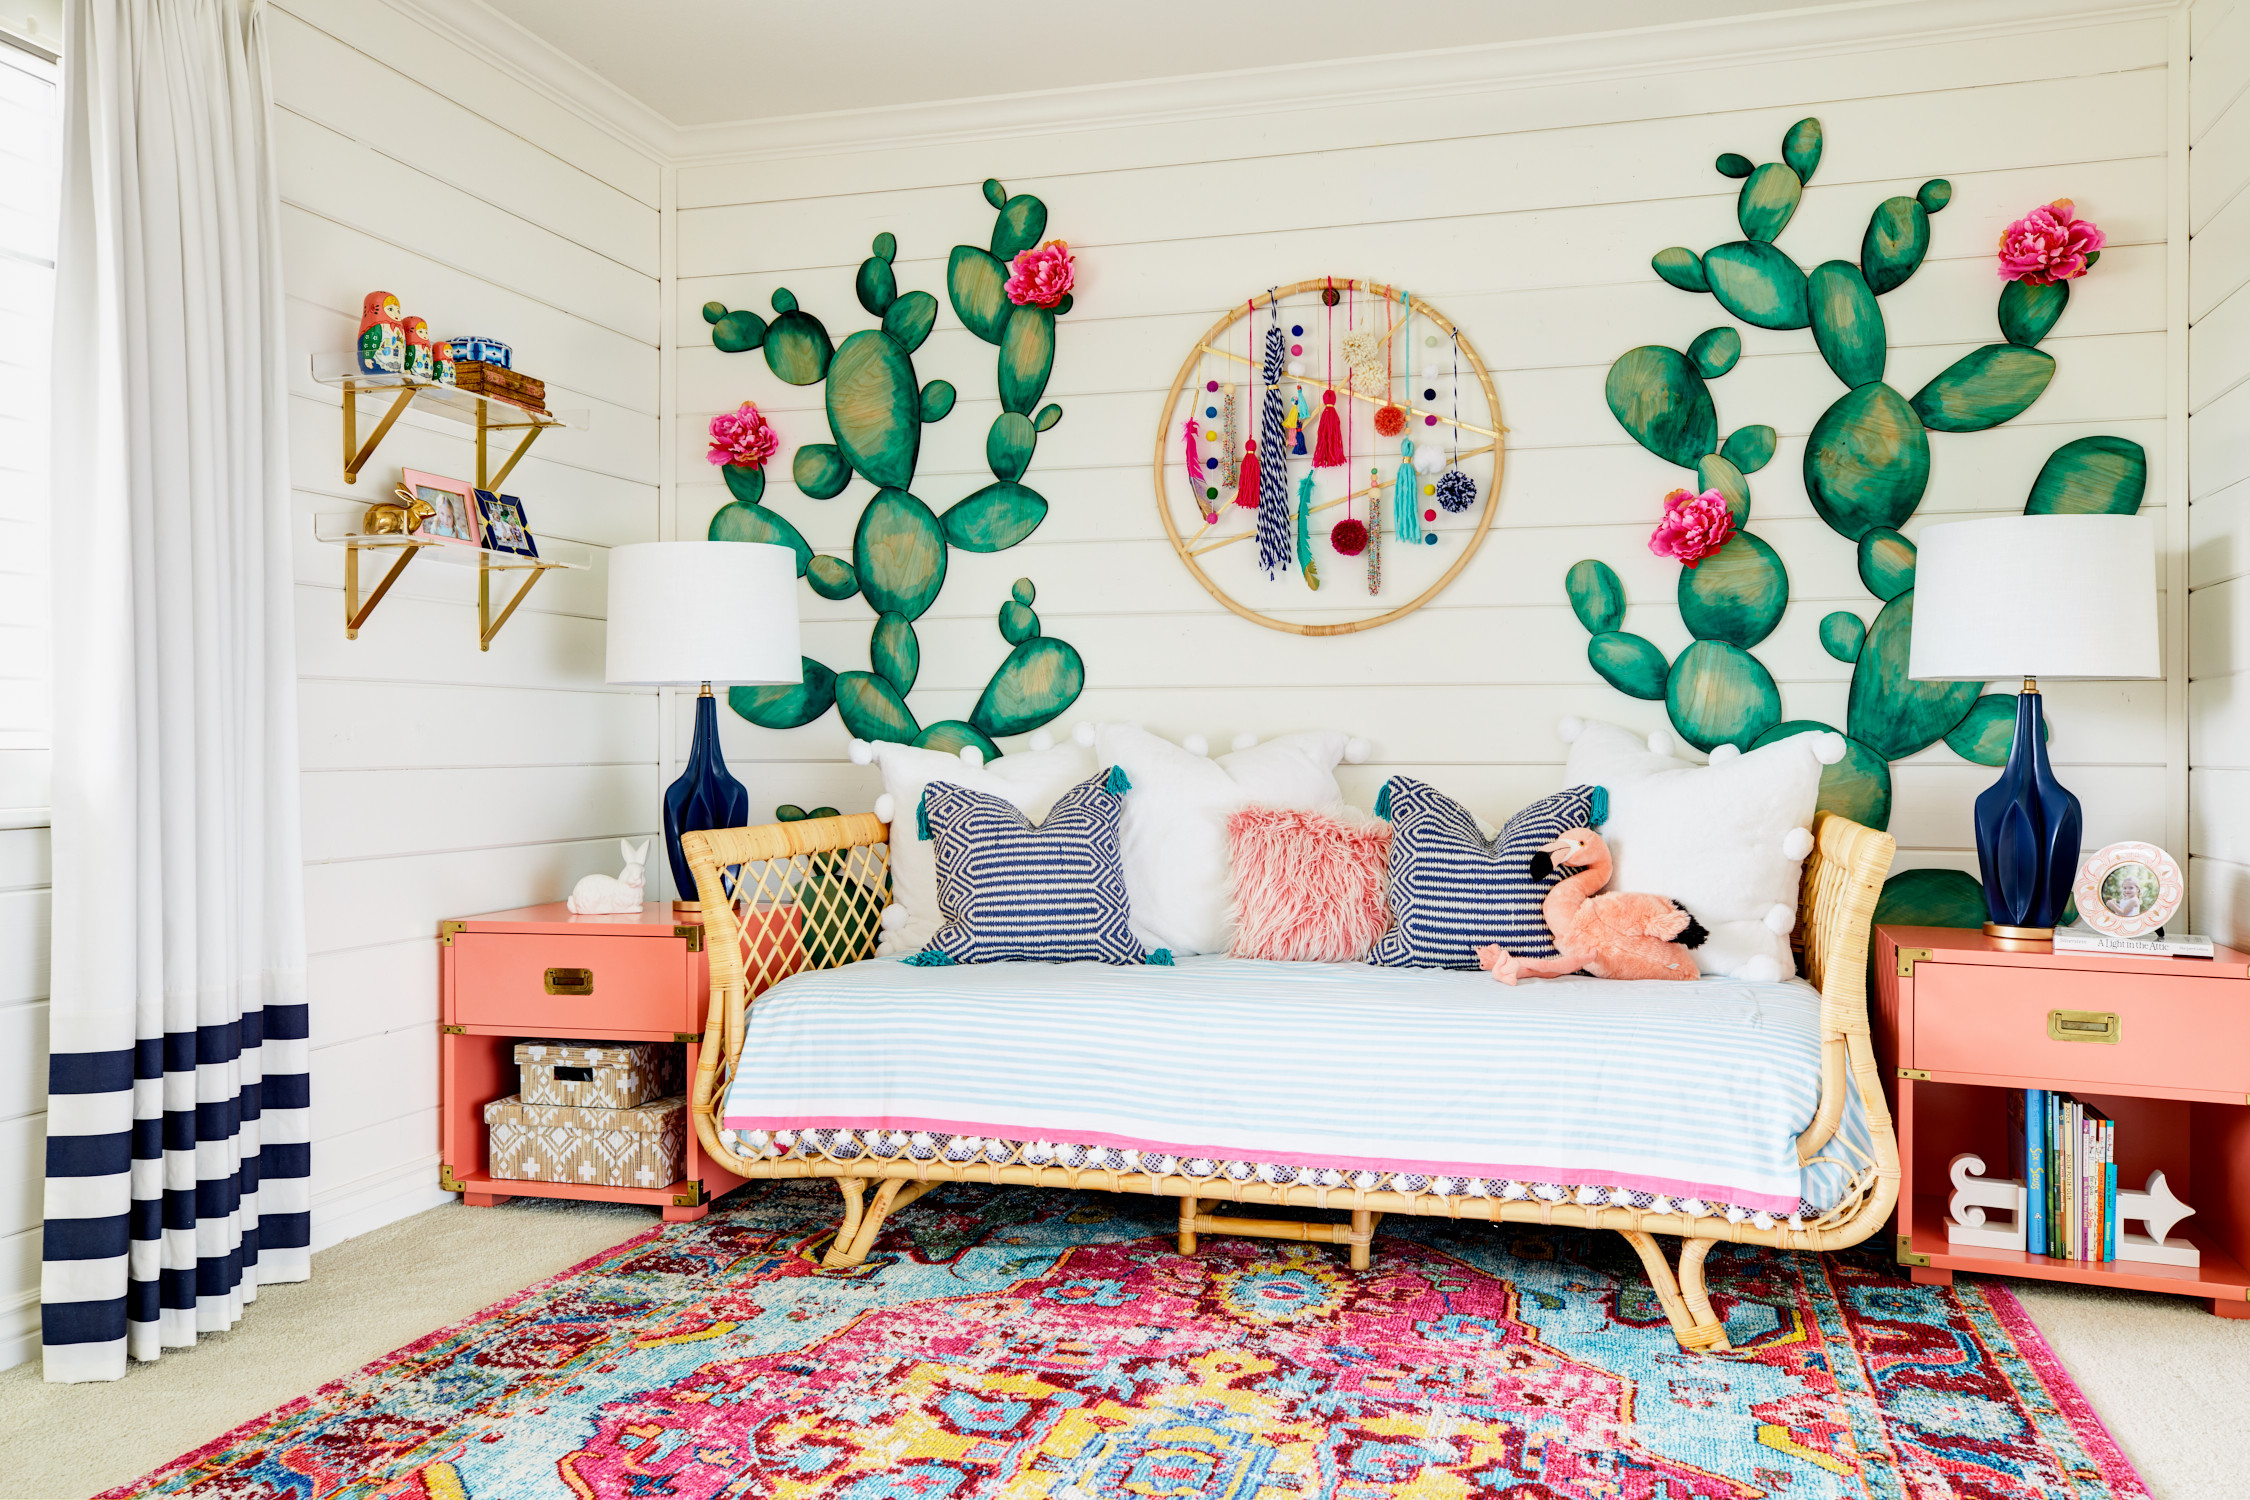 Res: 2250x1500, Boho Girl's Room with Cactus Accent Wall and Modern Colorful Dreamcatcher